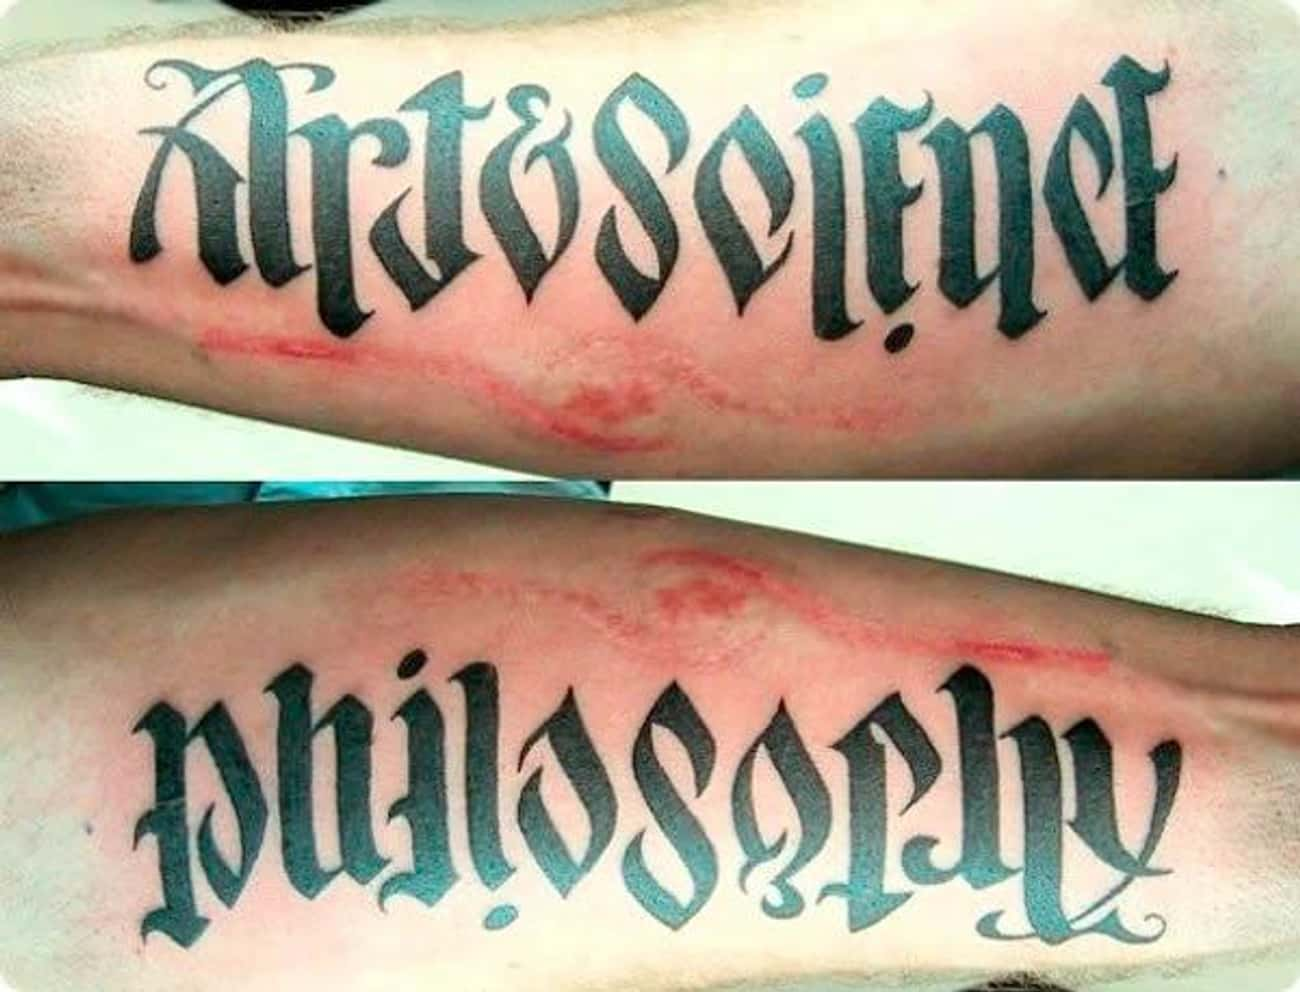 What Makes Up Philosophy? Art  is listed (or ranked) 3 on the list 18 Awesome Ambigram Tattoos That'll Make You Look Twice